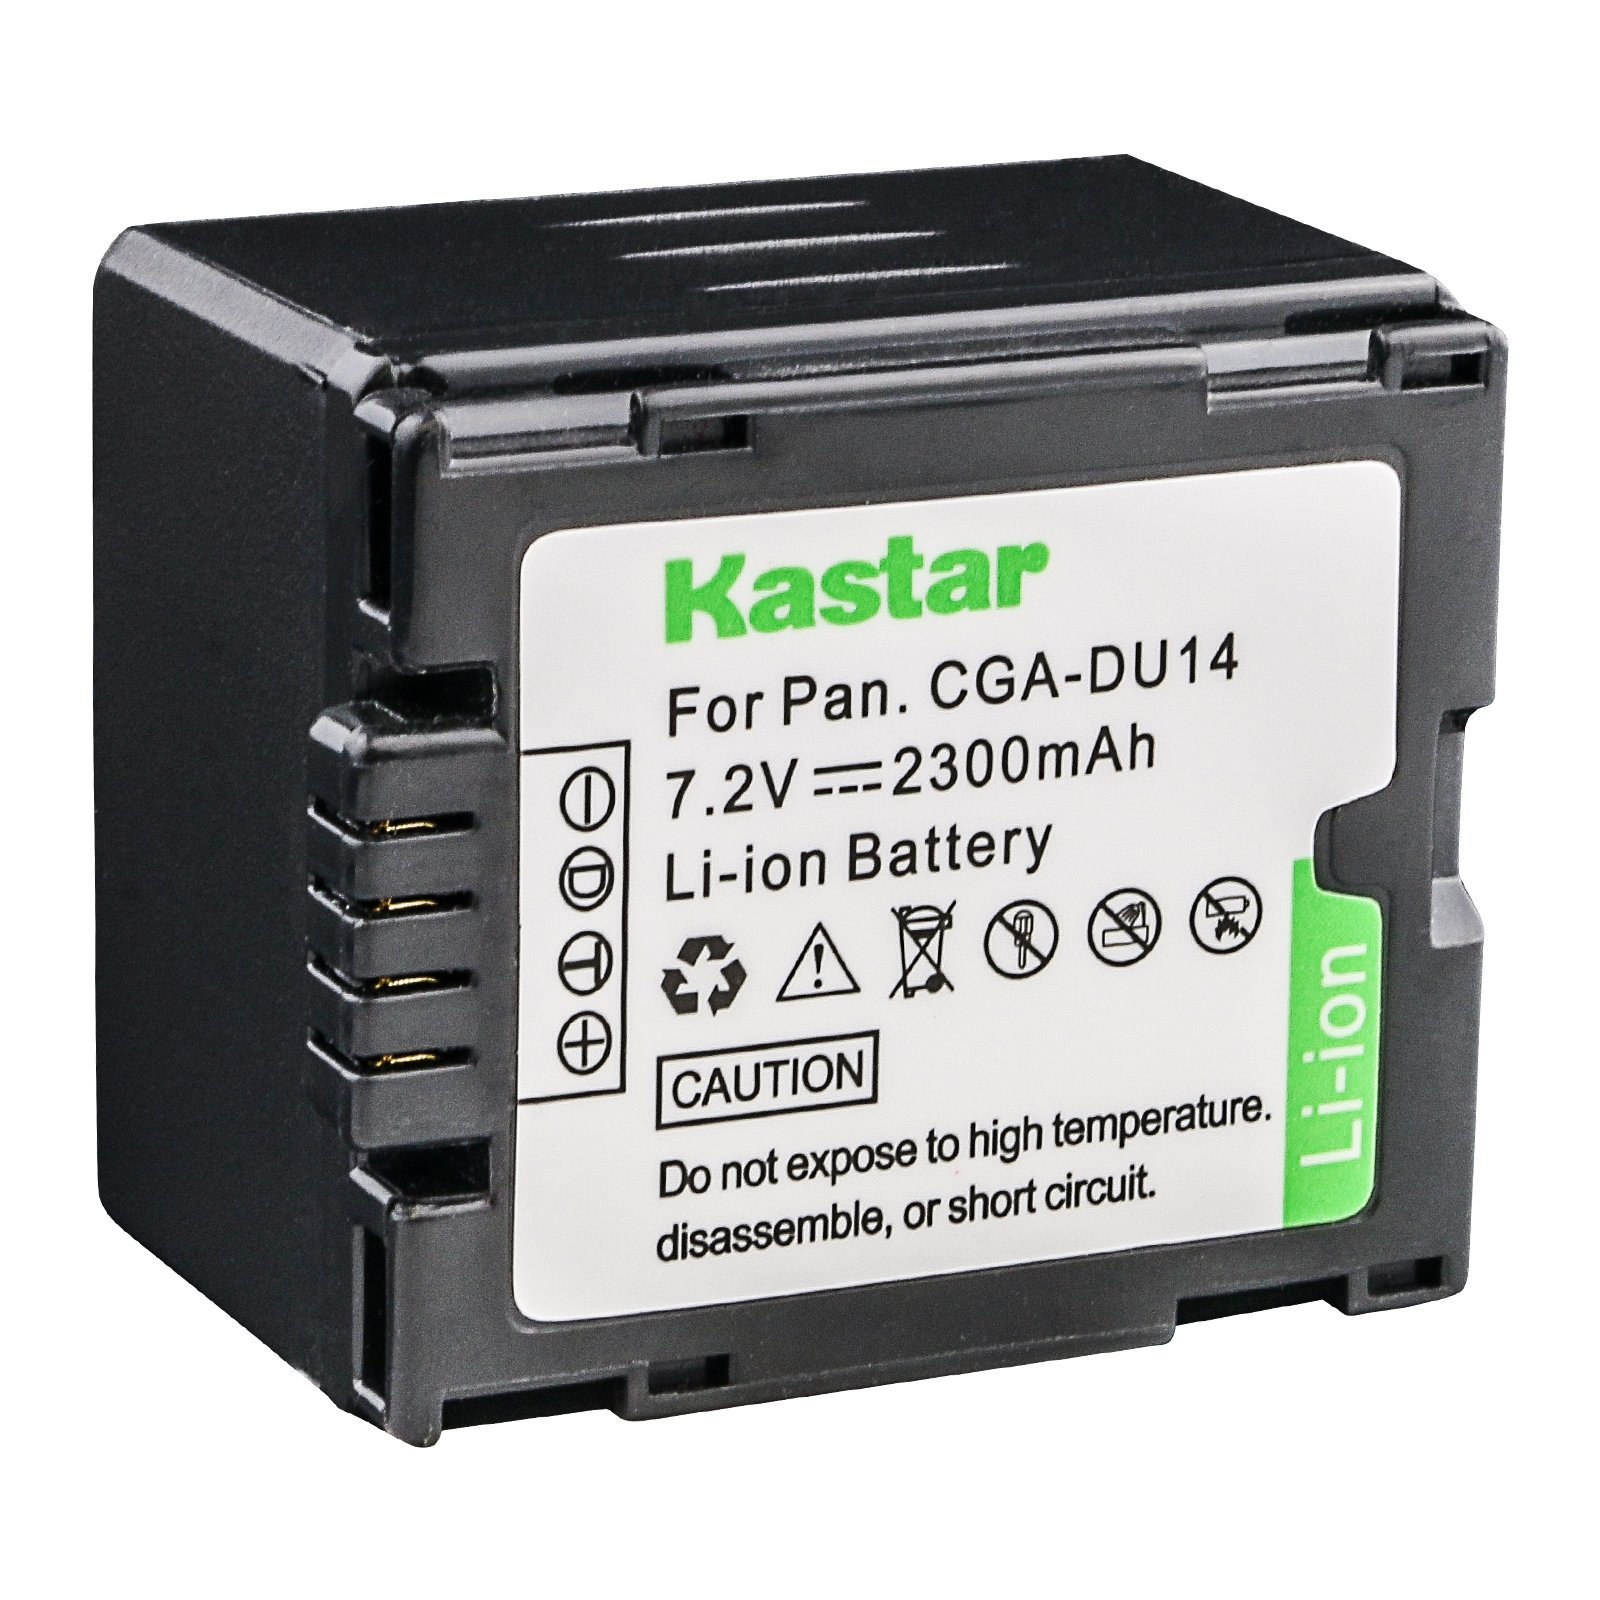 Kastar Hi-quality Replacement Battery for Panasonic CGA-DU12 CGA-DU14 CGA-DU14A/1B CGA-DU21 CGA-DU21A/1B Battery by Kastar